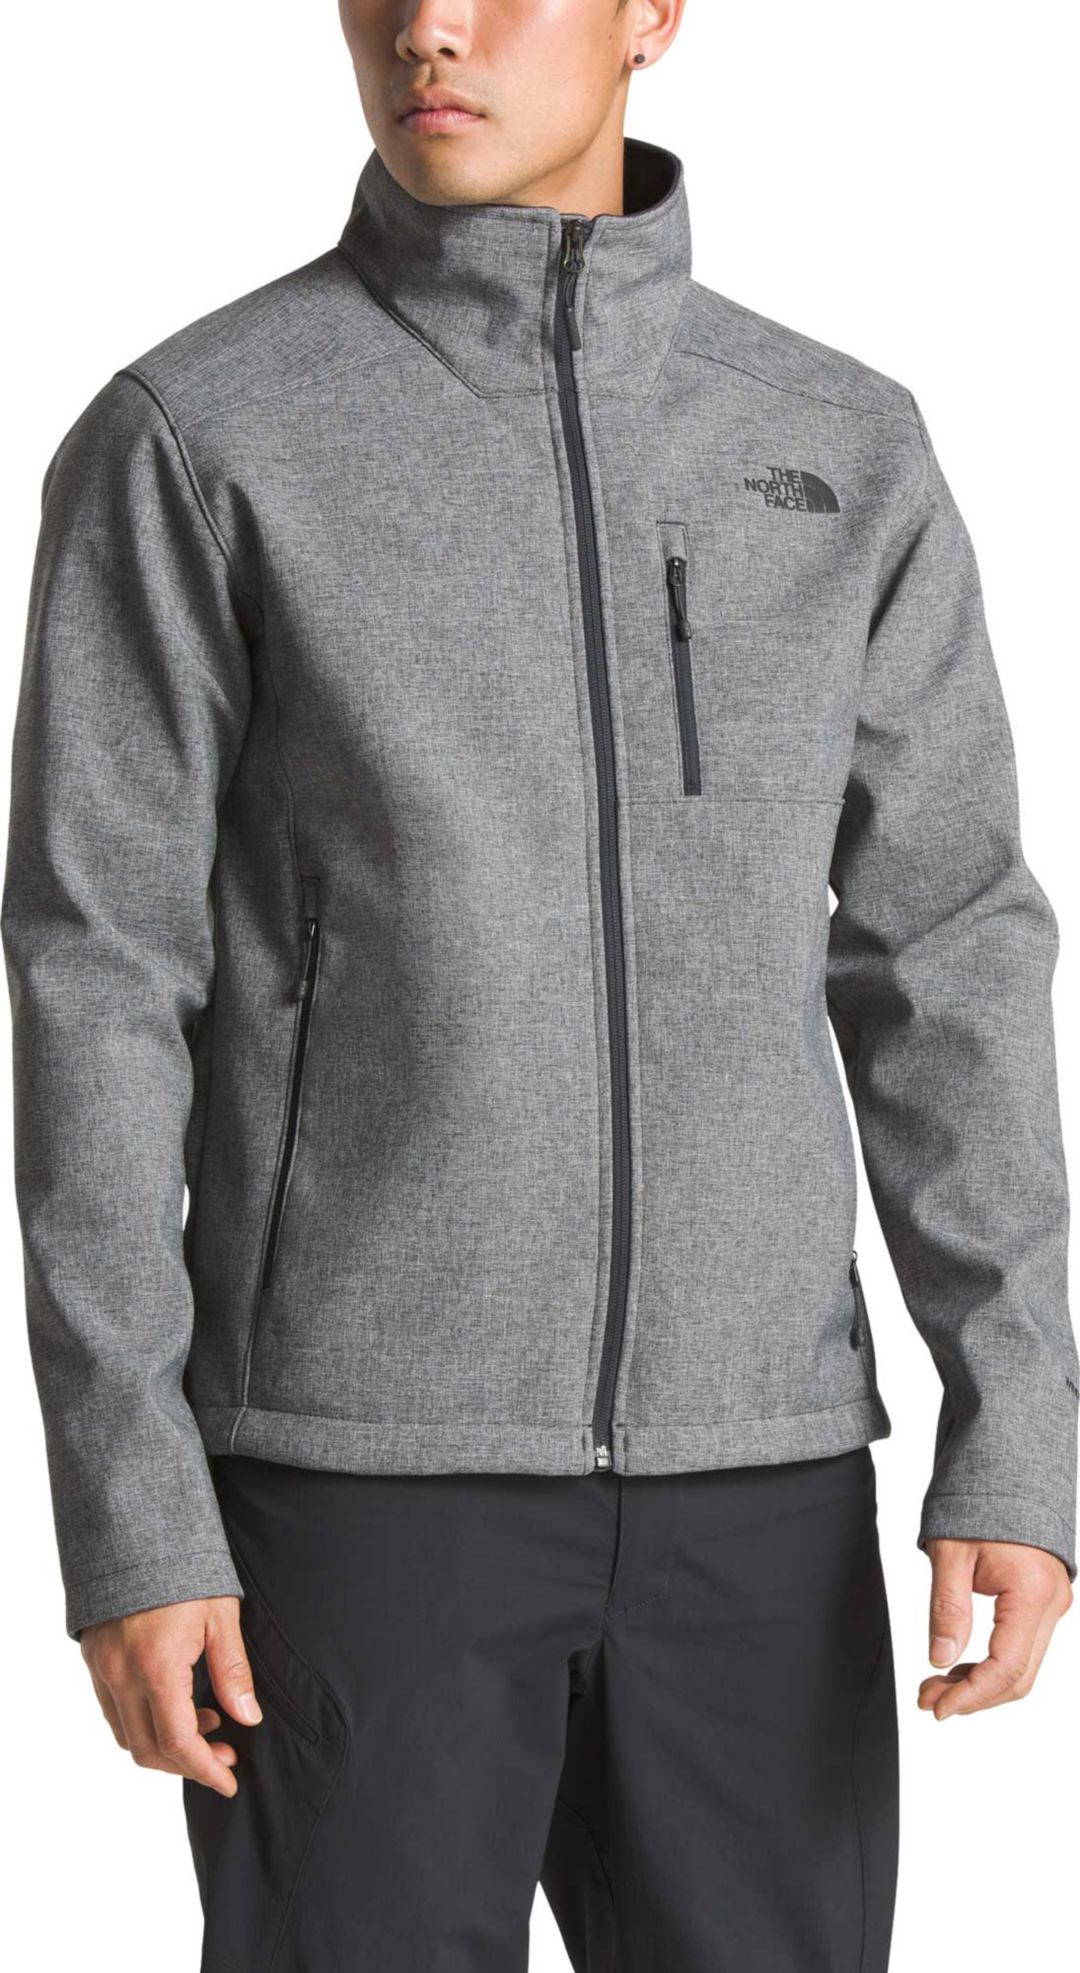 057dc49ef The North Face Men's Apex Bionic 2 Soft Shell Jacket